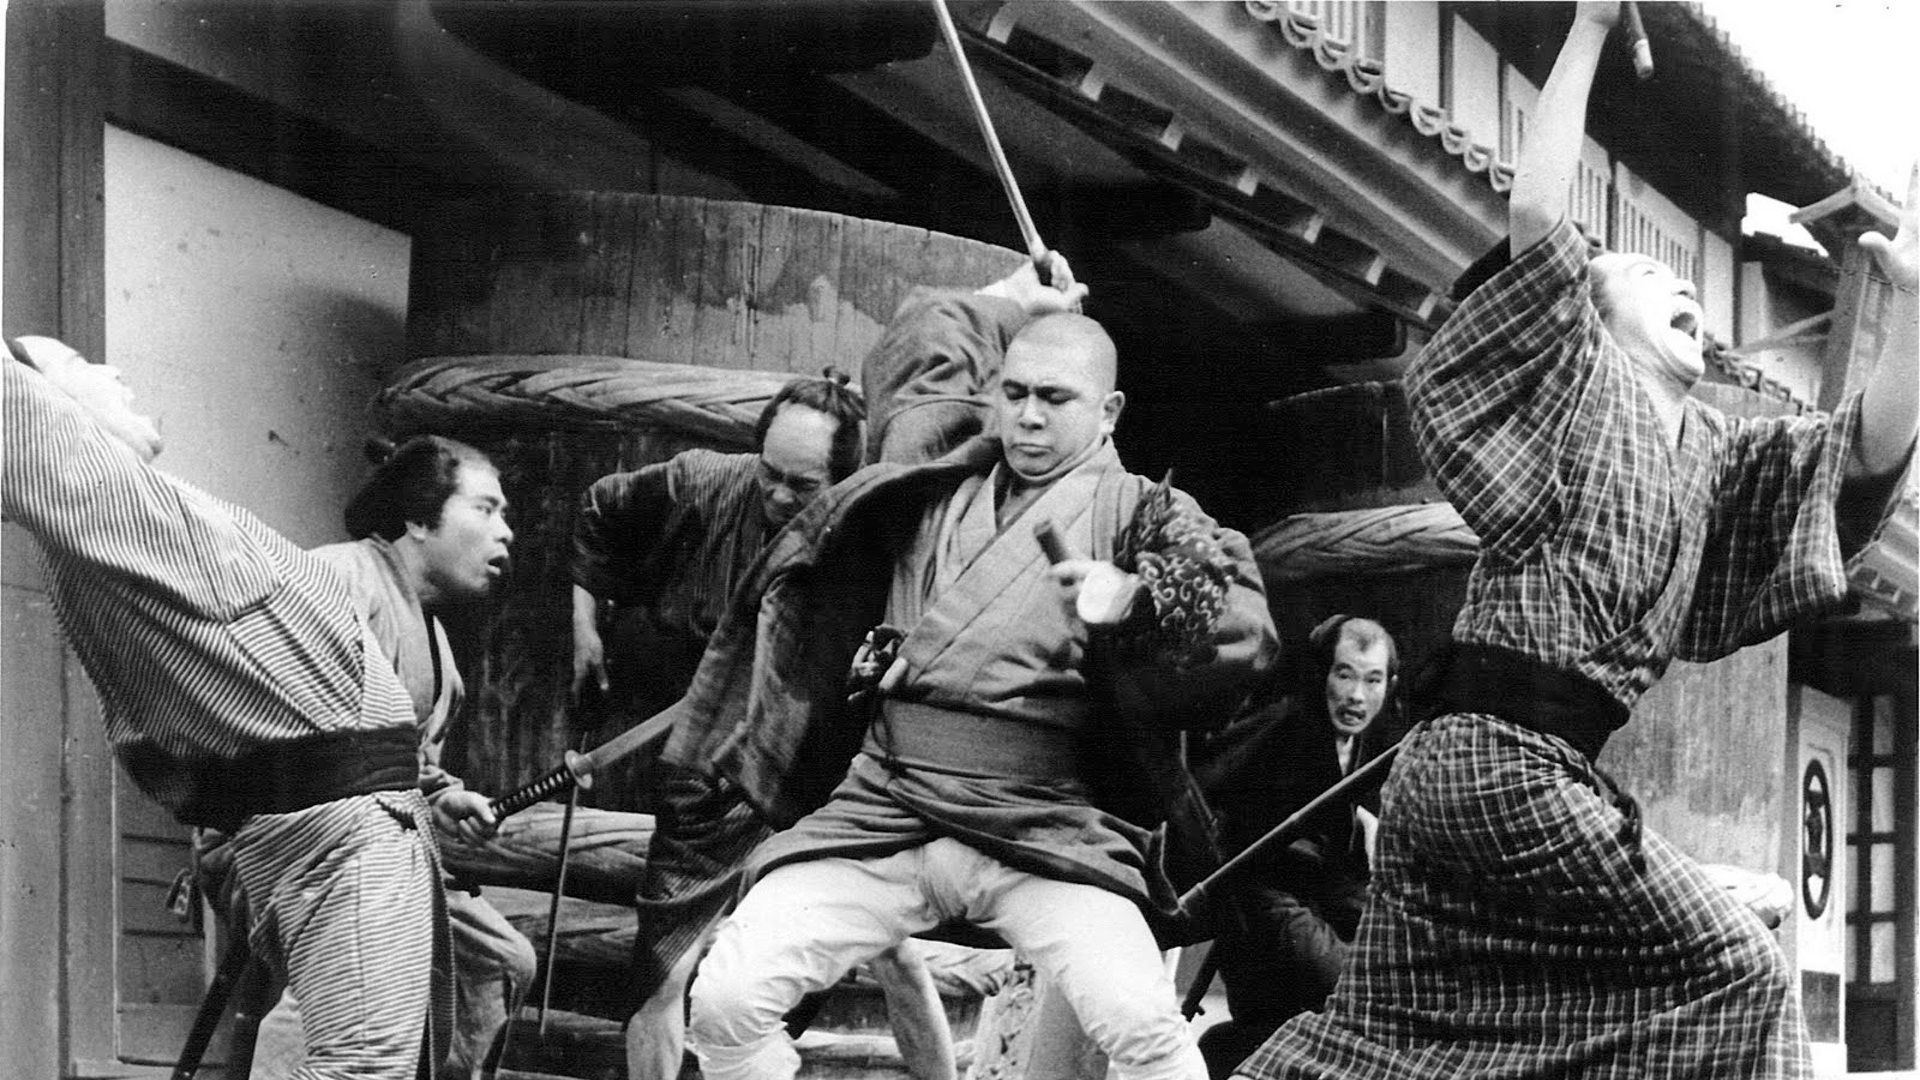 tale-of-zatoichi-the-scene.jpg